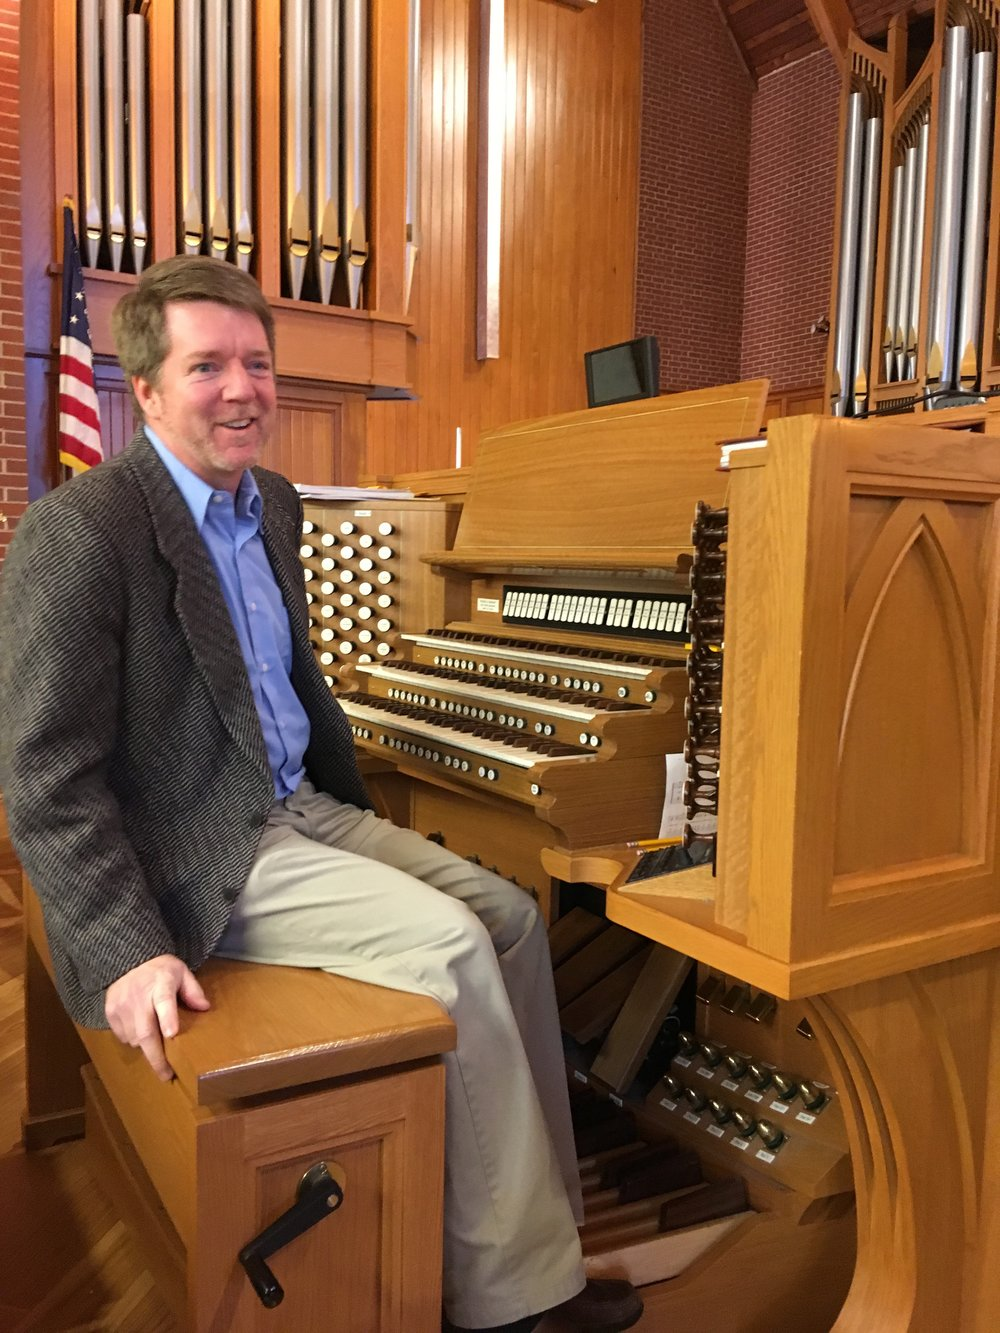 Organist and Choirmaster of St. Michael's Episcopal Church, Raleigh